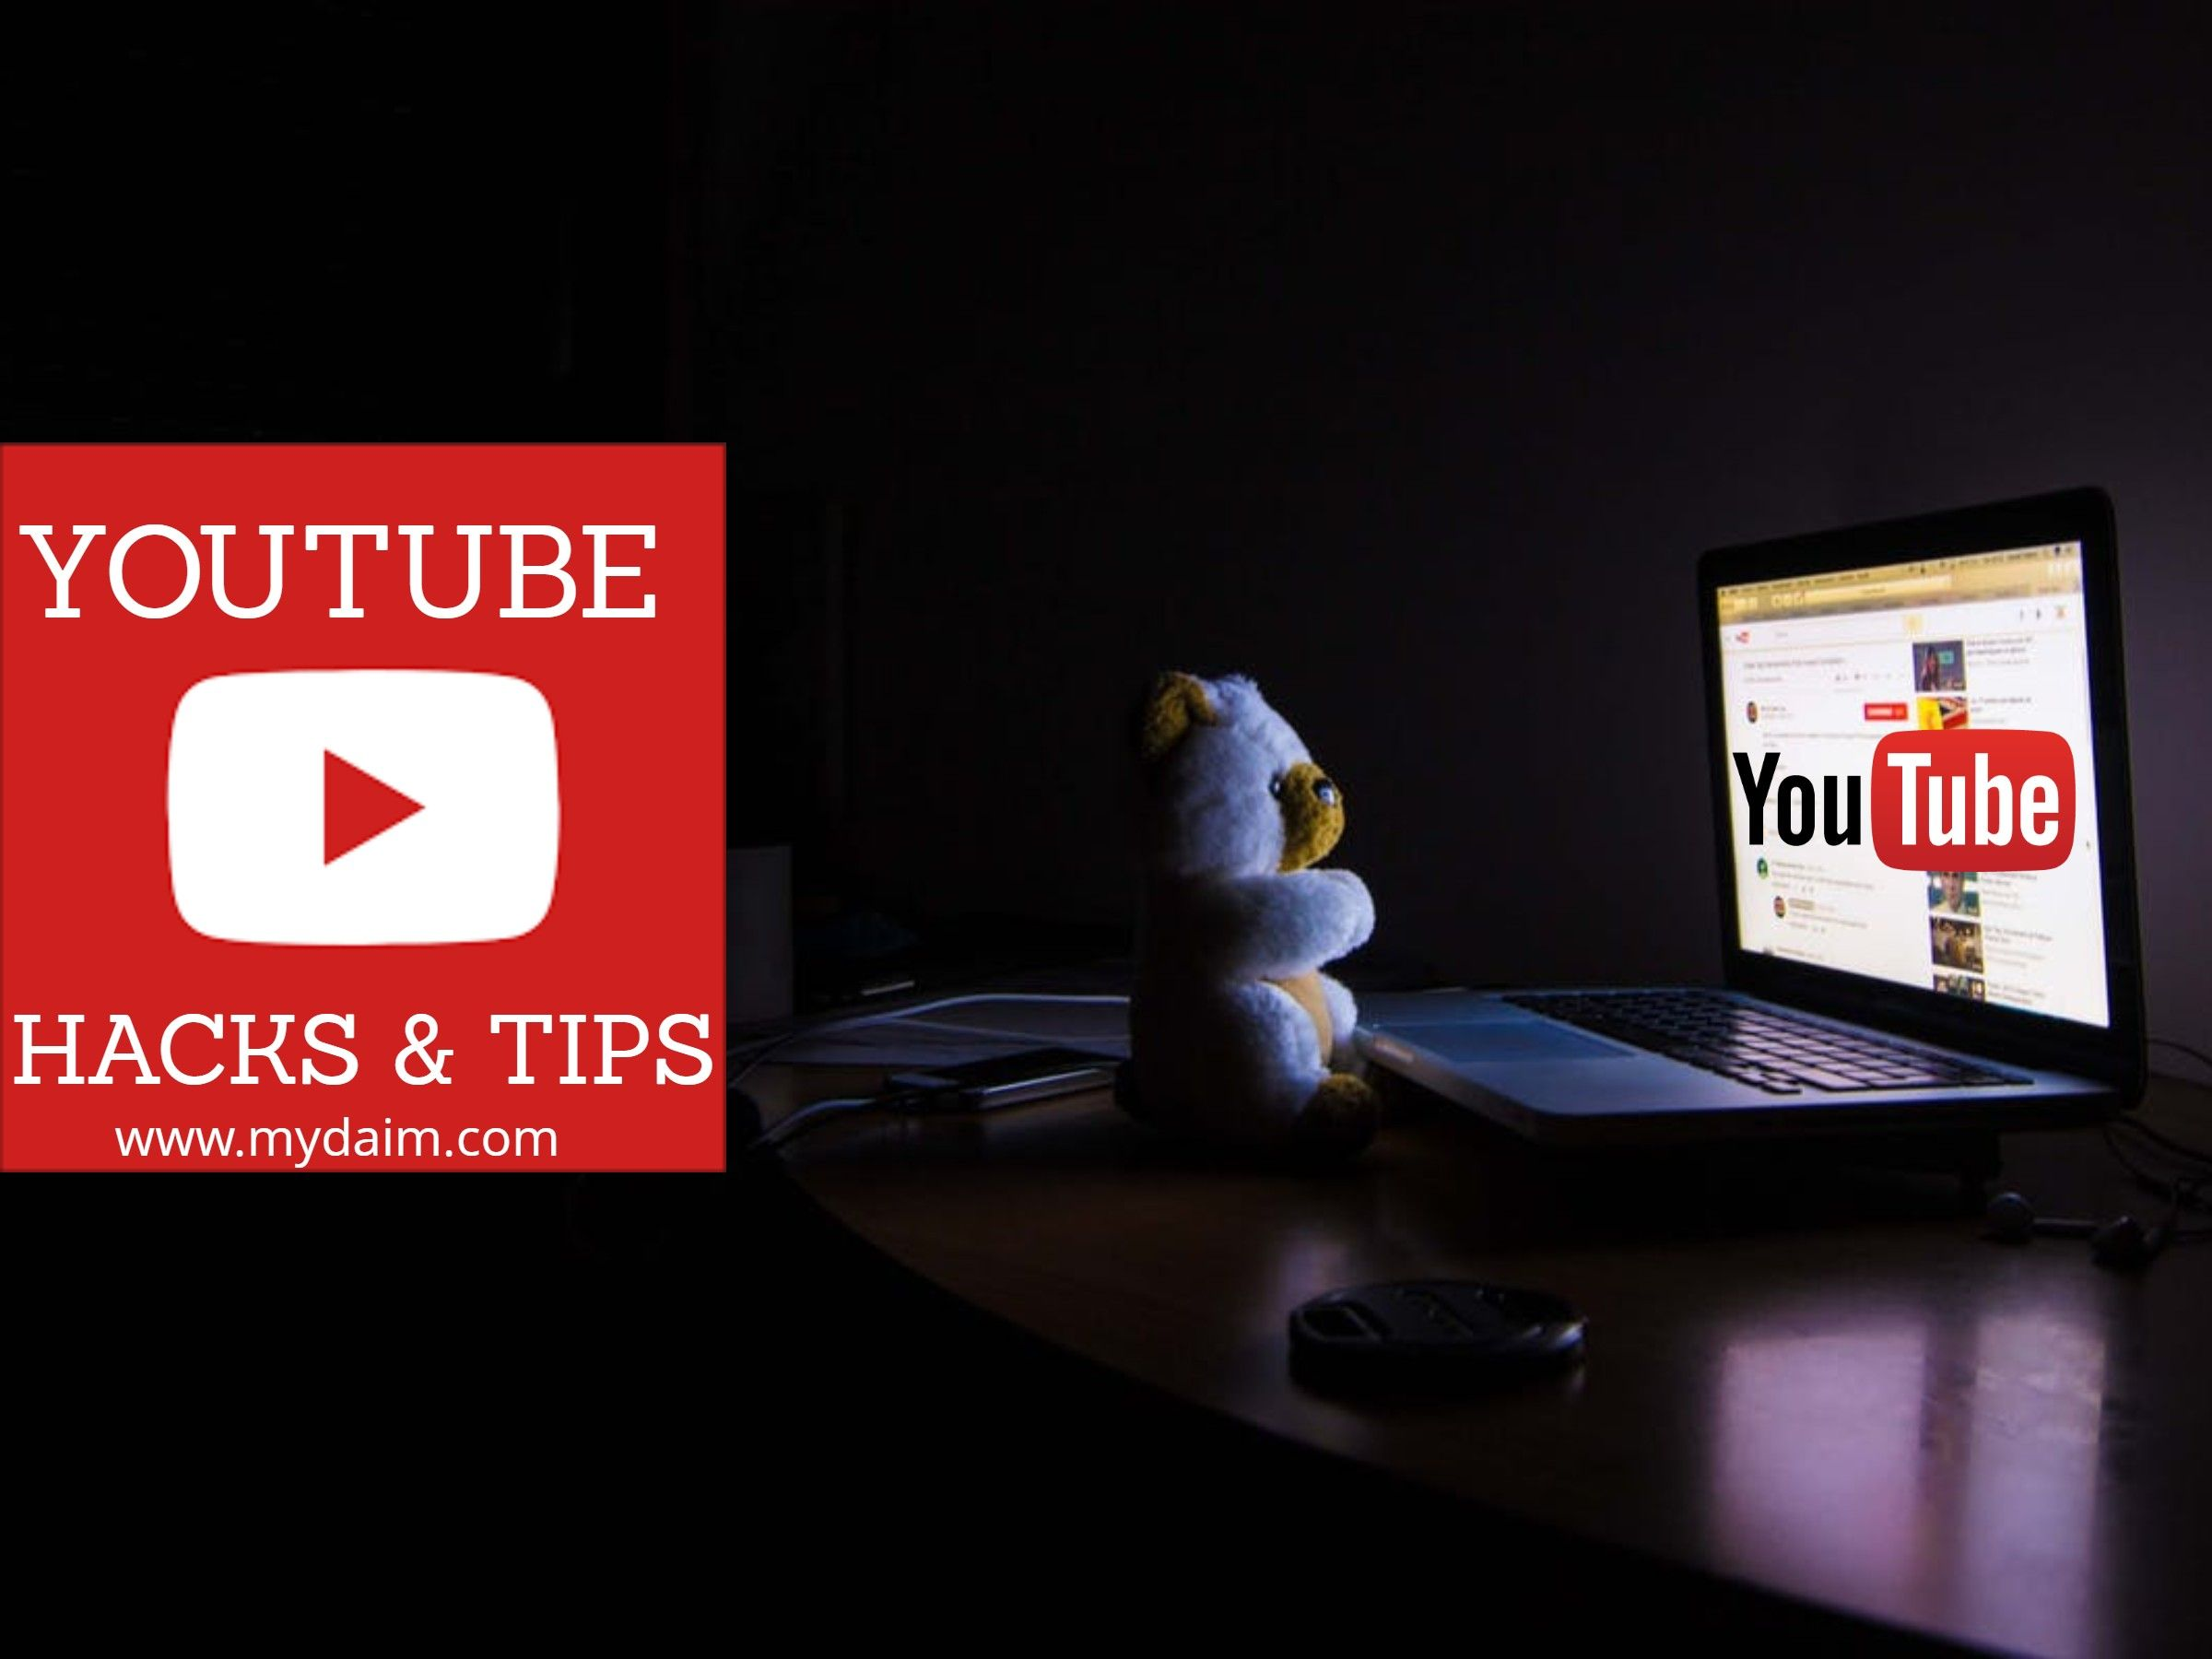 Youtube Hacks Tricks & Features You probably didn't know